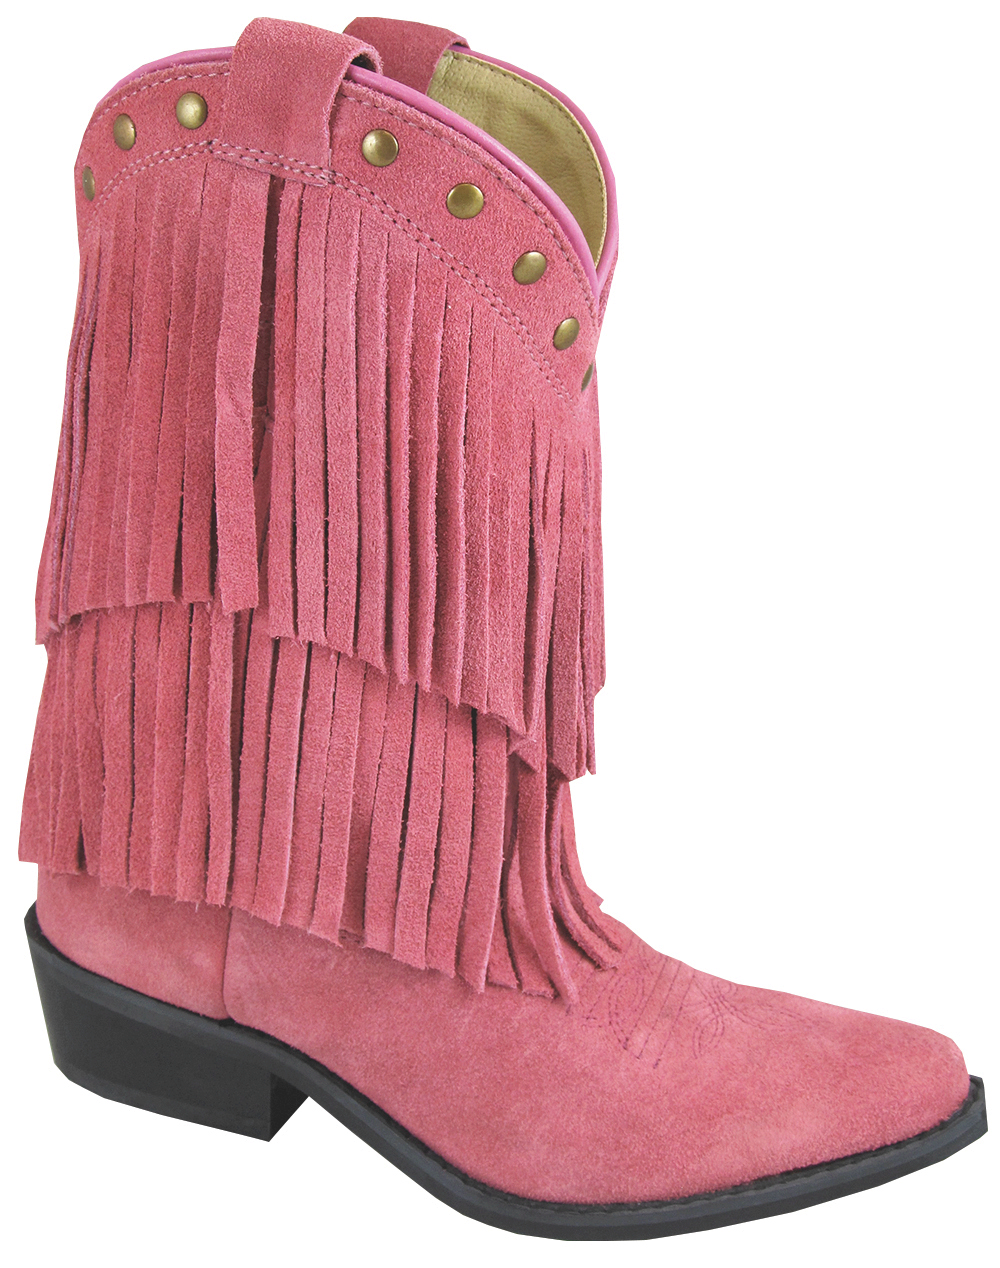 Smoky Mountain Child's Wisteria Double Fringe Leather Boots -Pink 3 R Pink